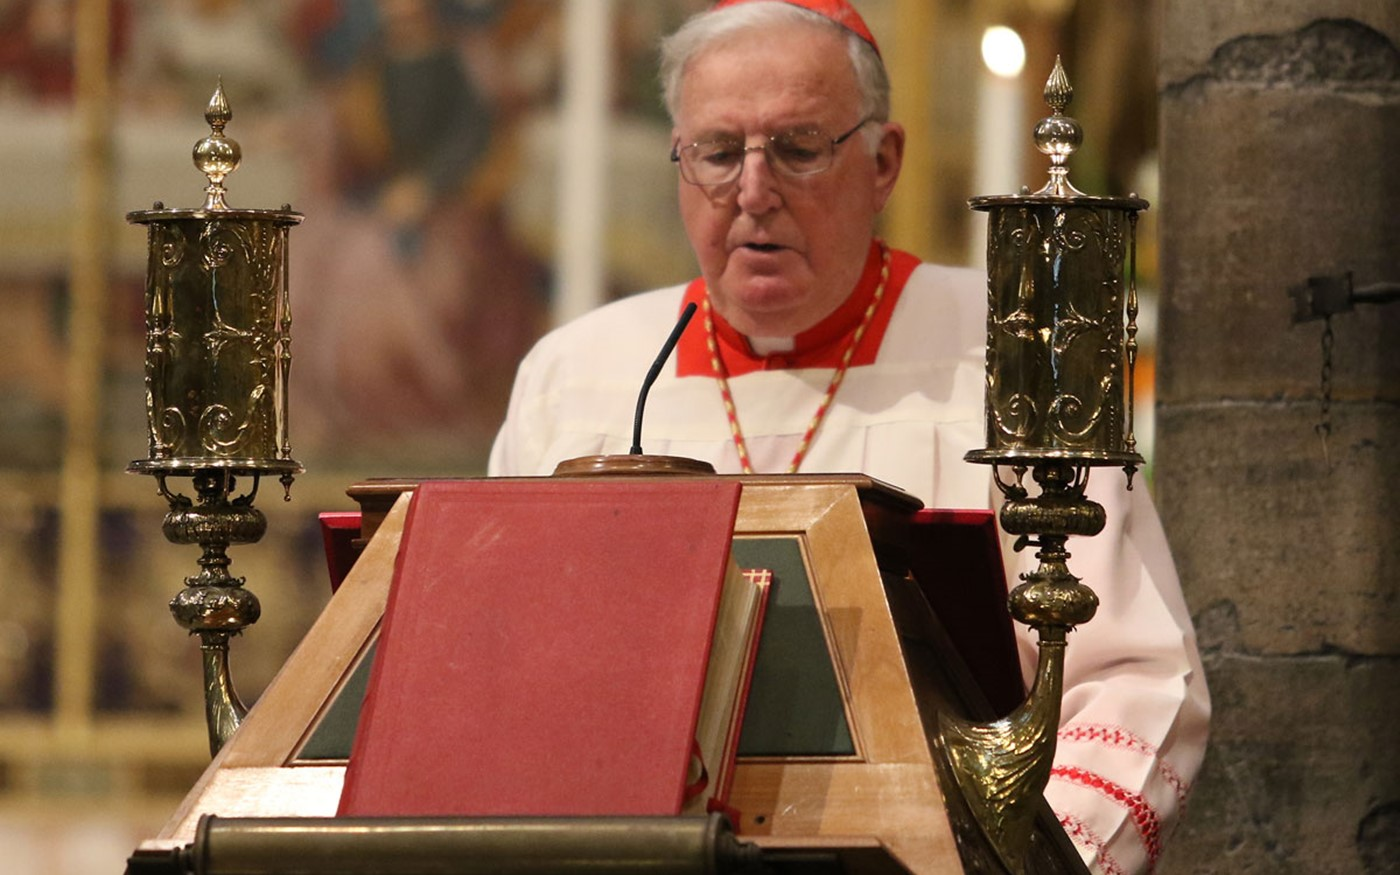 His Eminence Cardinal Cormac Murphy-O'Connor, Archbishop Emeritus of Westminster, read 1 Chronicles 16: 8-13, 23-24